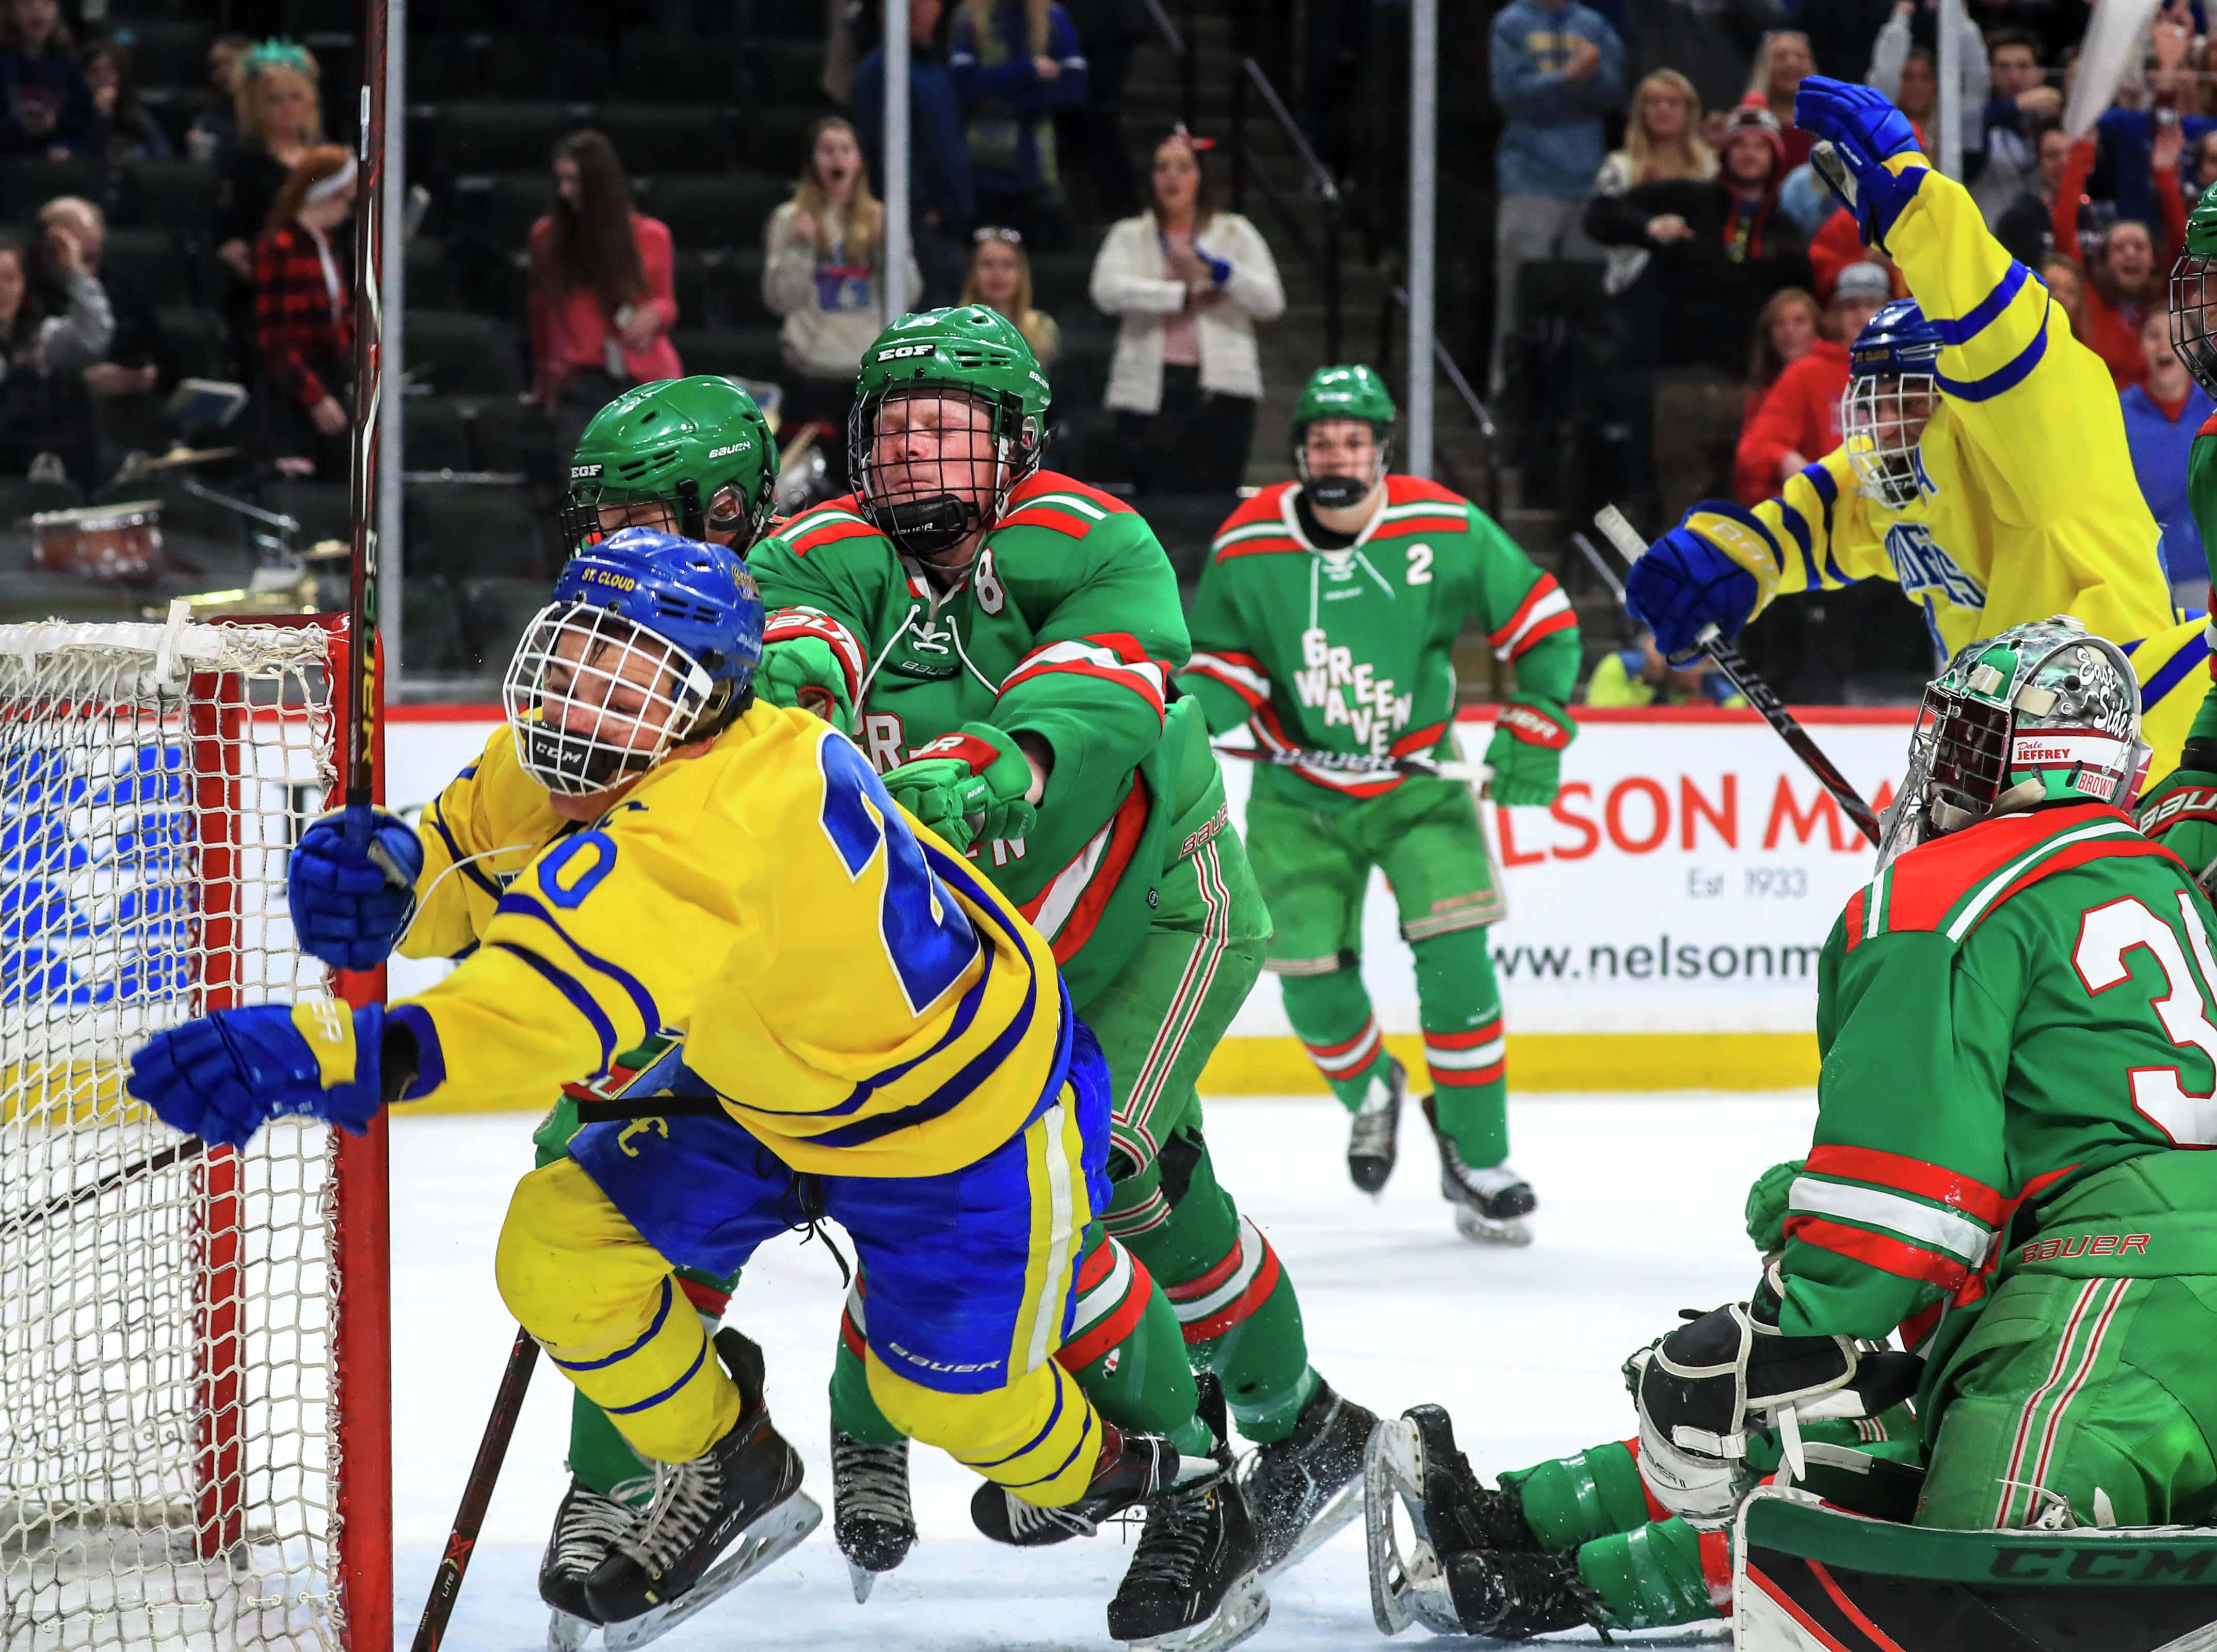 Second Seeded Cathedral Knocks Out East Grand Forks In Semifinals